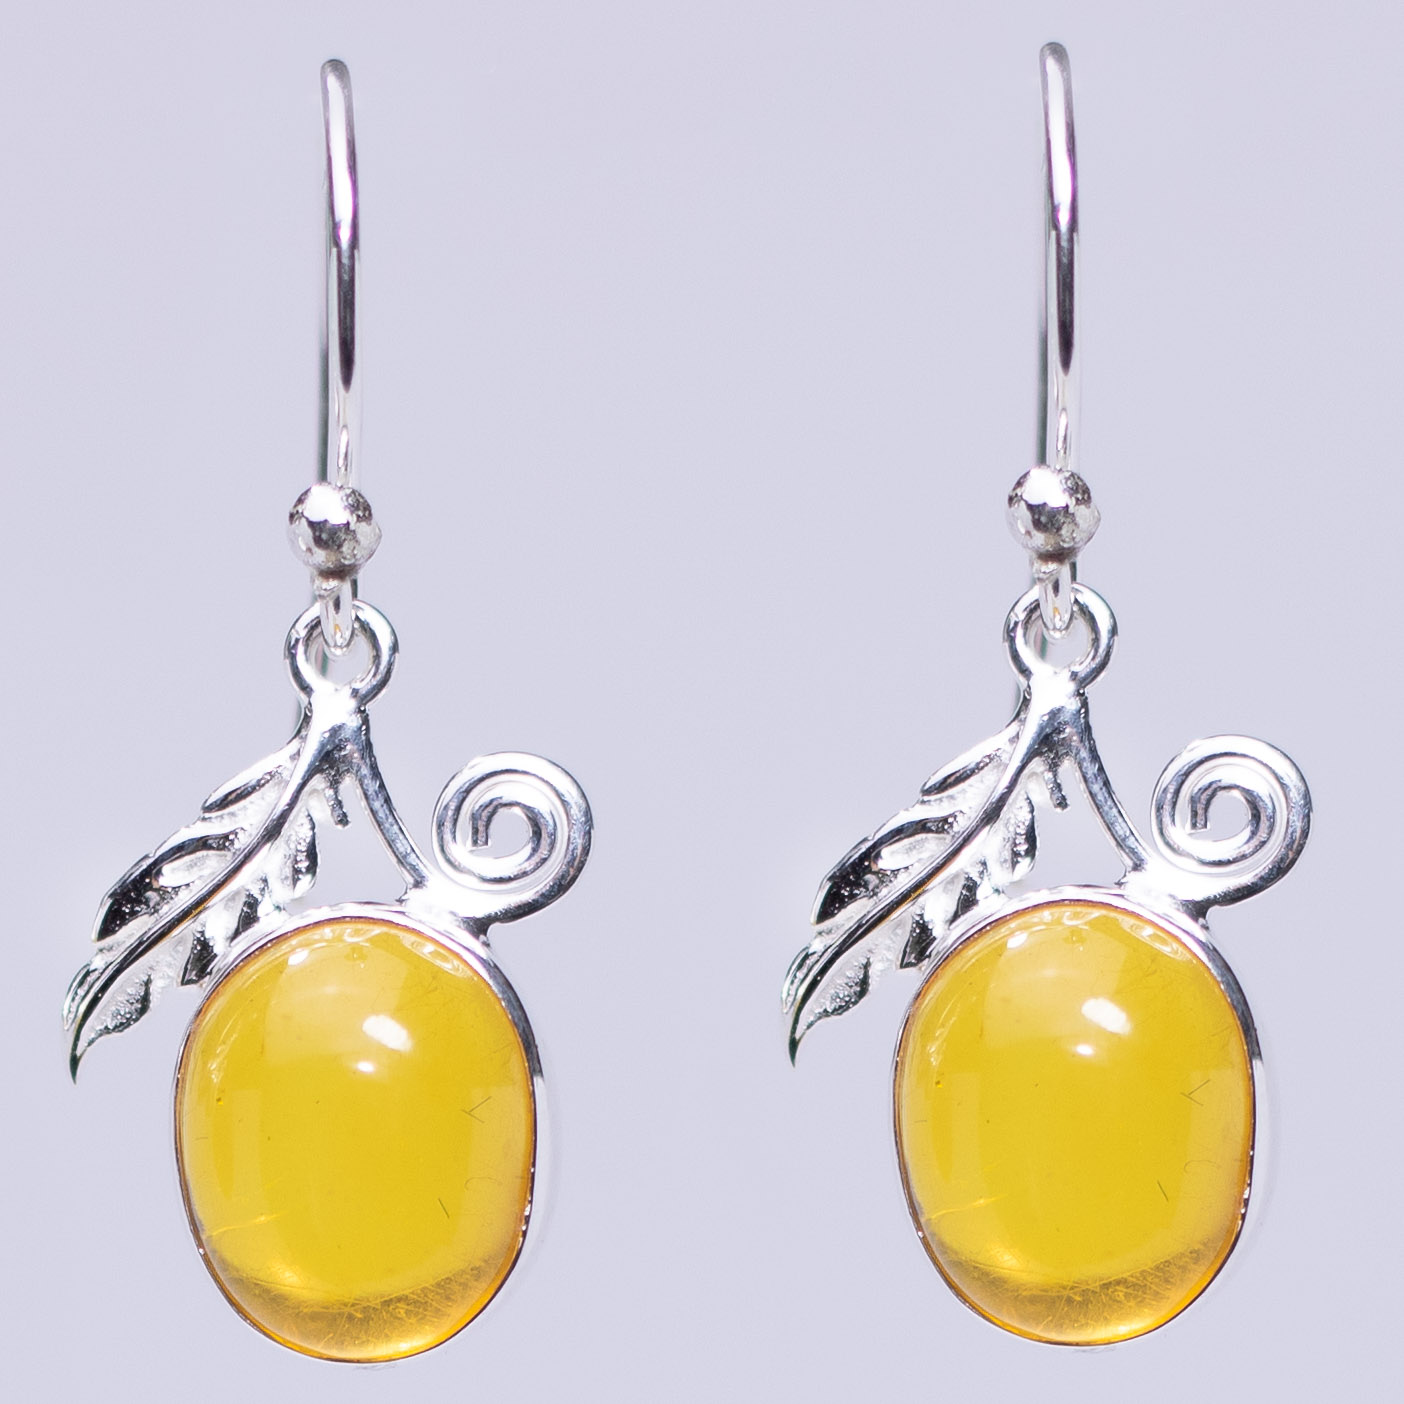 Baltic Amber Leaf and Swirl Earrings